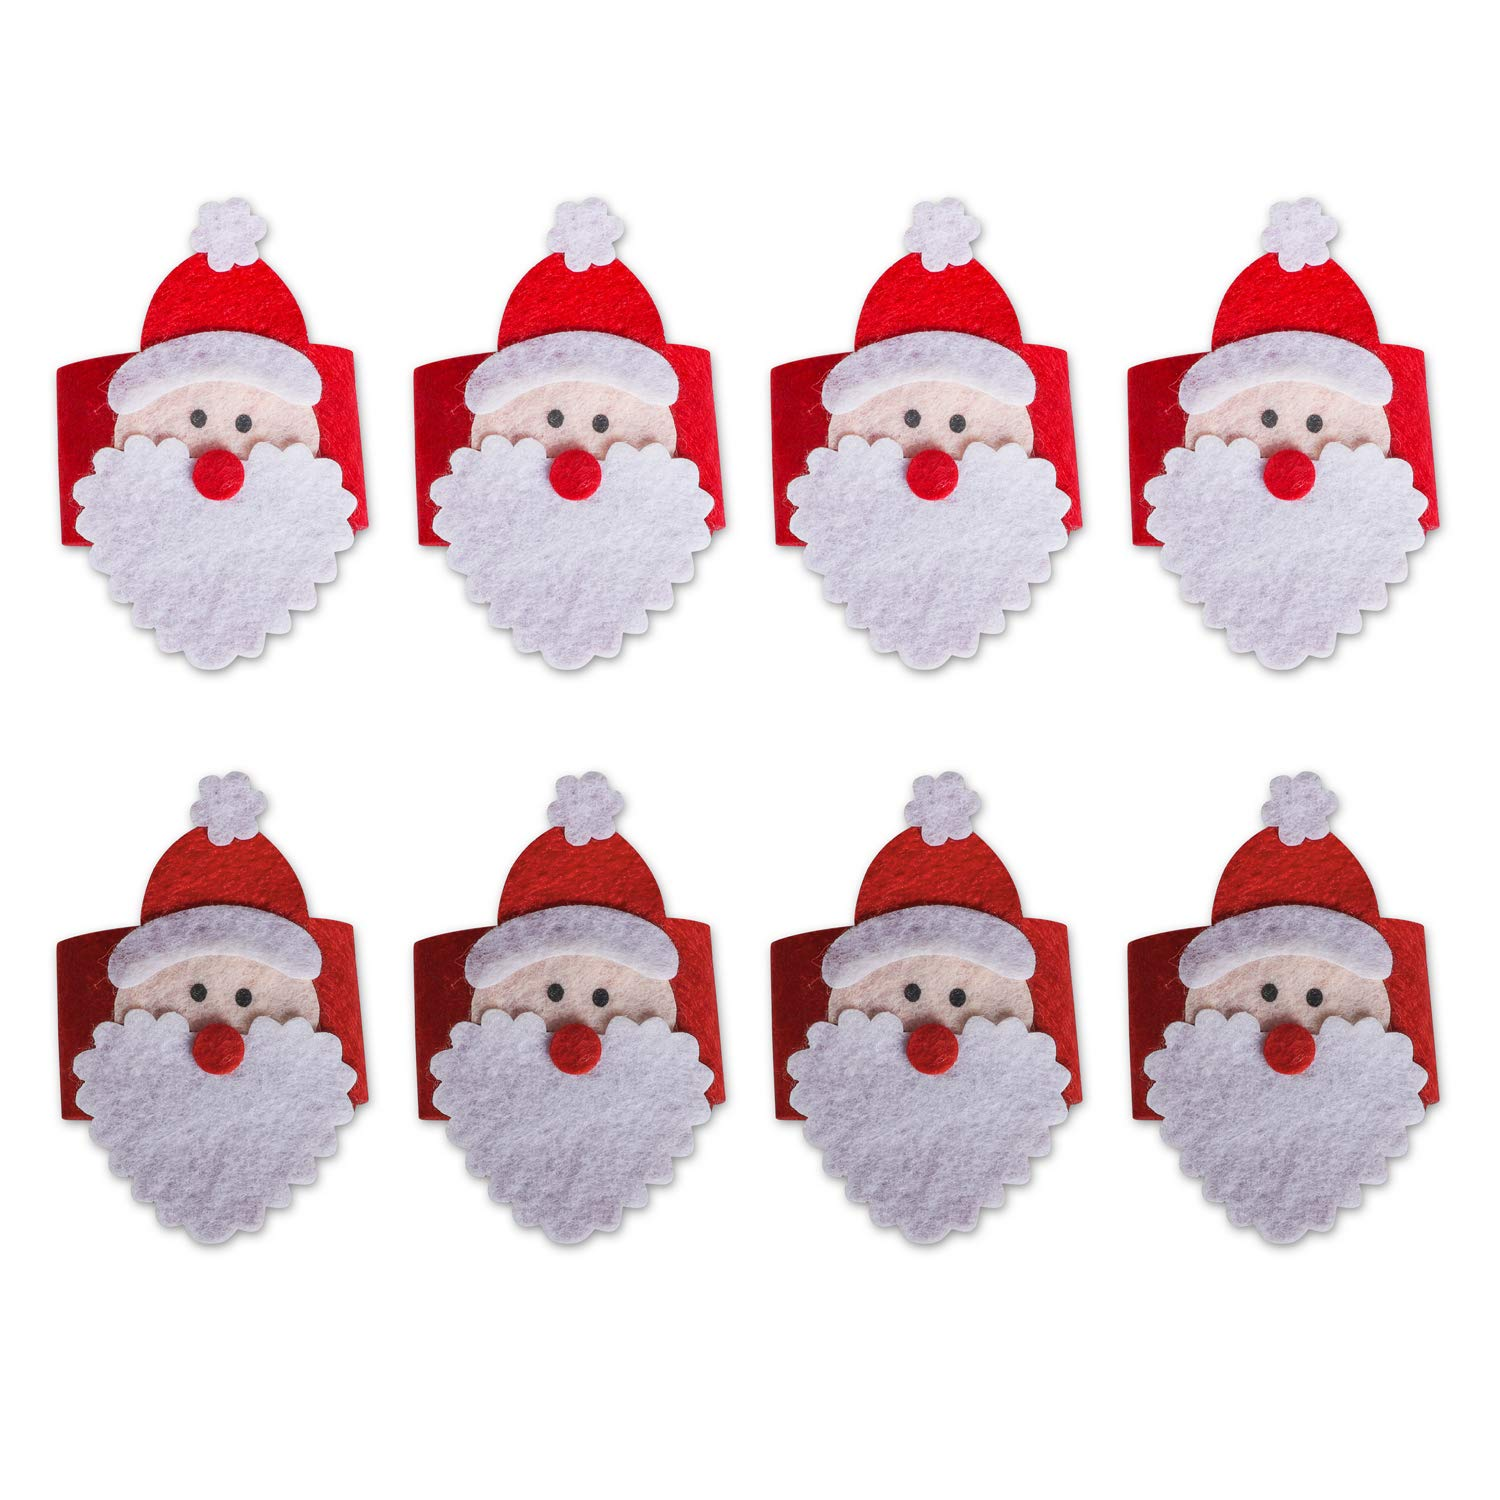 PrettyDate 8pcs Christmas Napkin Rings Napkin Holders Christmas Party Banquet Dinner Table Decor